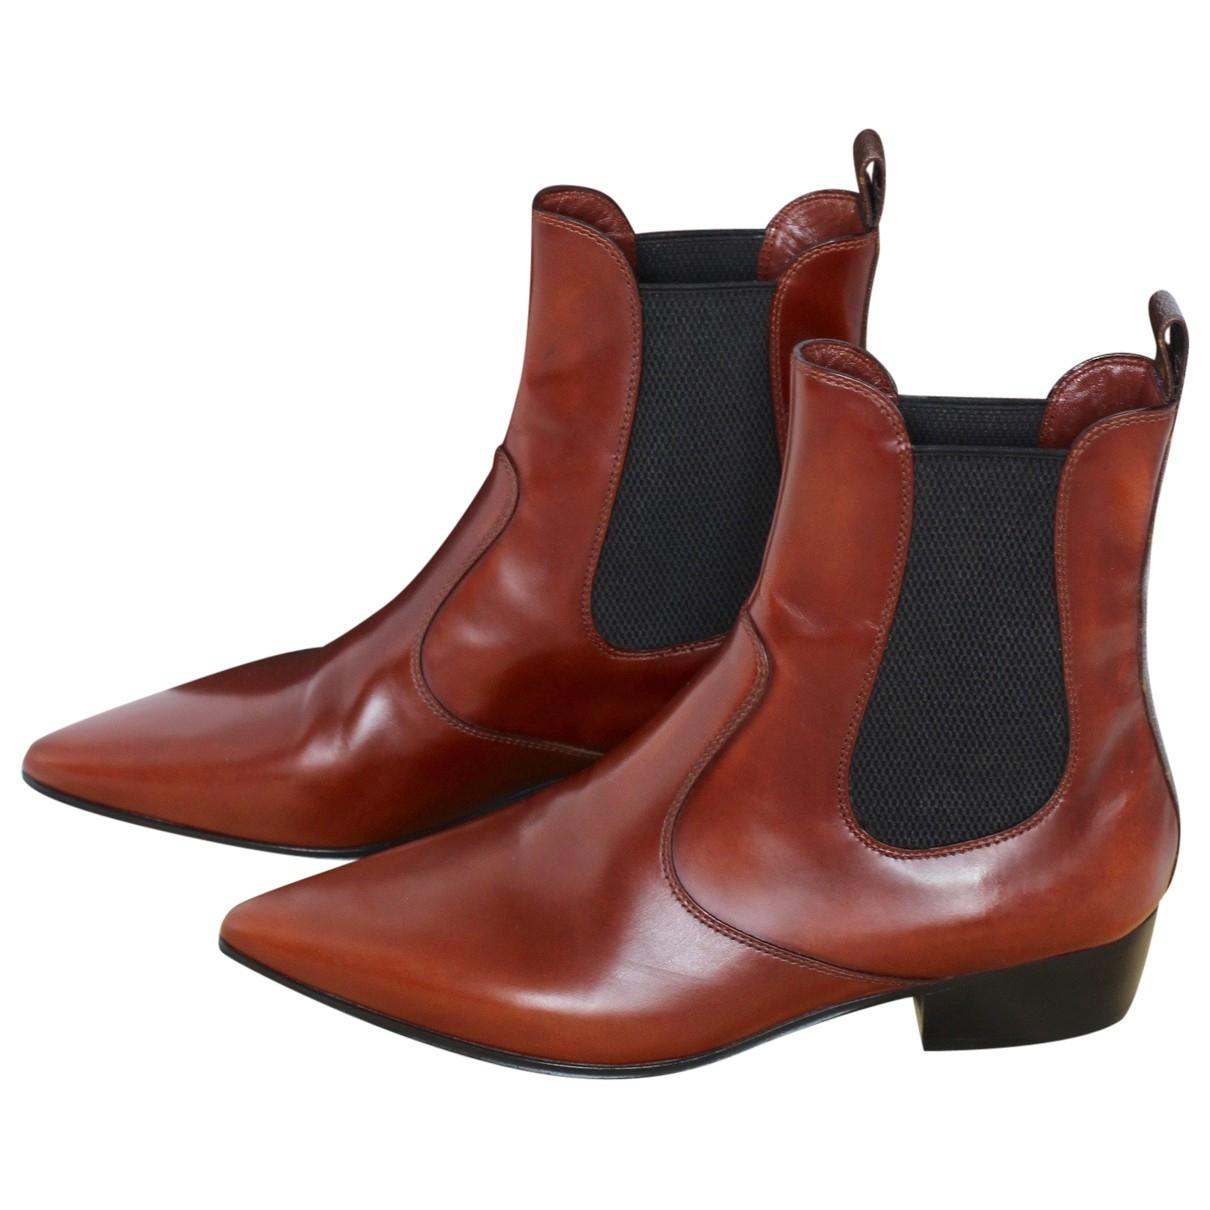 d609270baff6 Lyst - Louis Vuitton Leather Ankle Boots in Brown